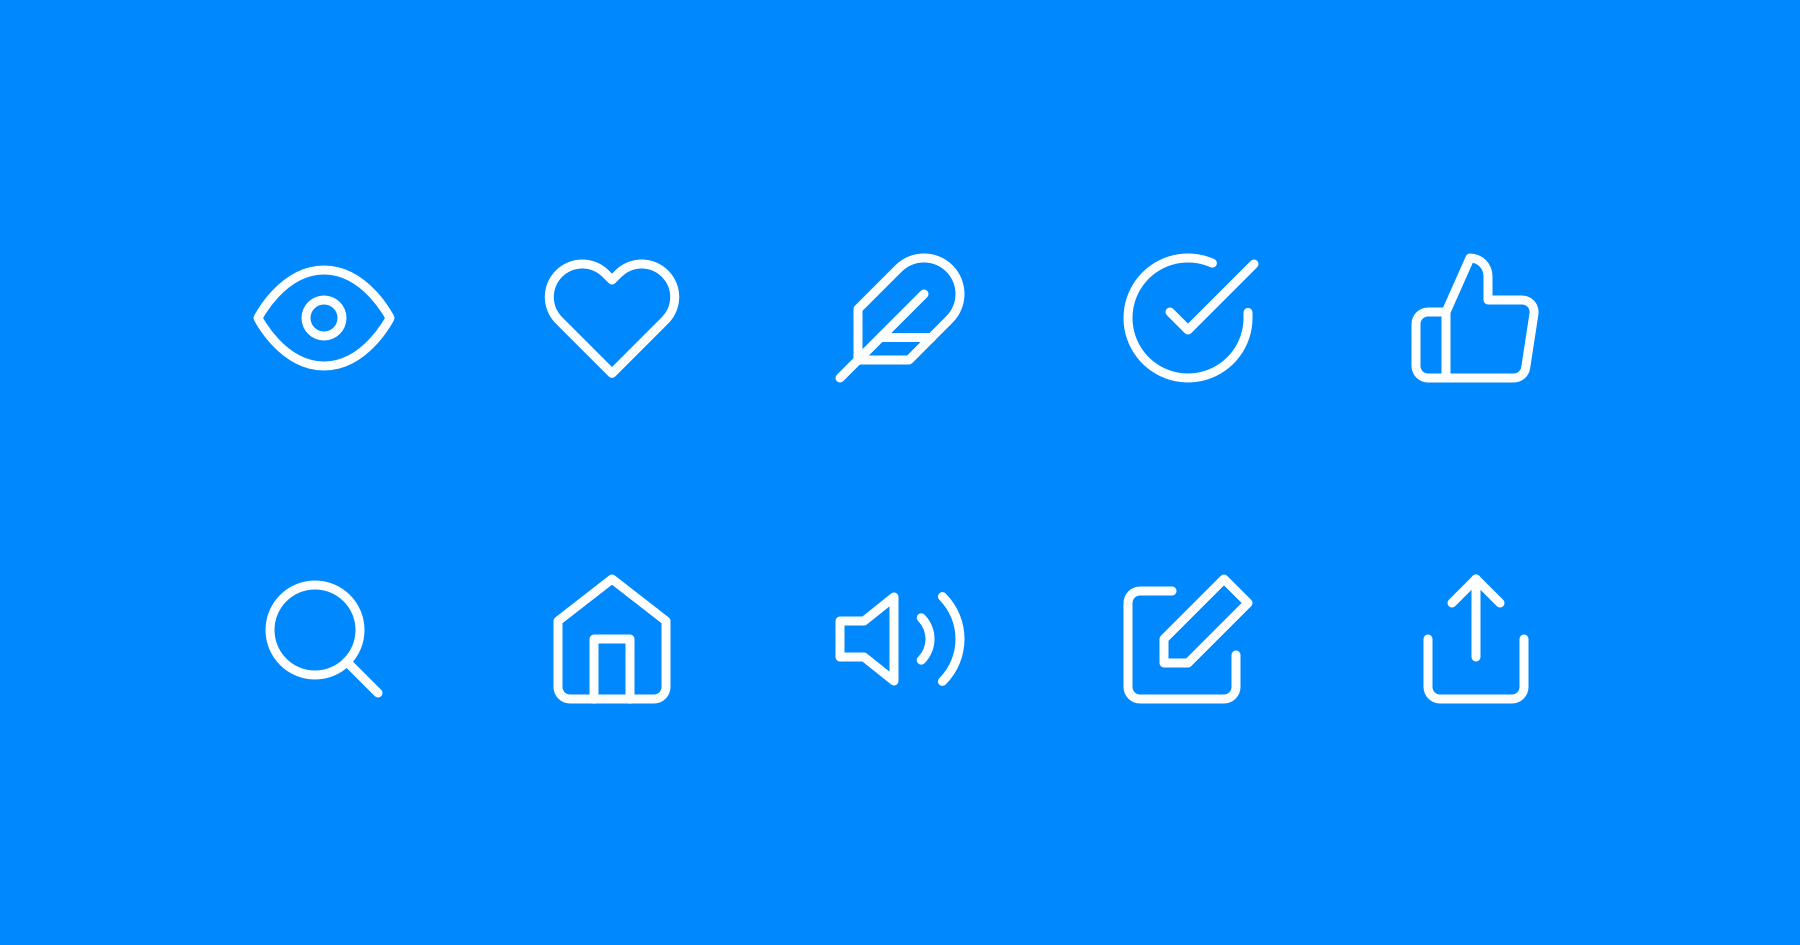 Feather – Simply beautiful open source icons